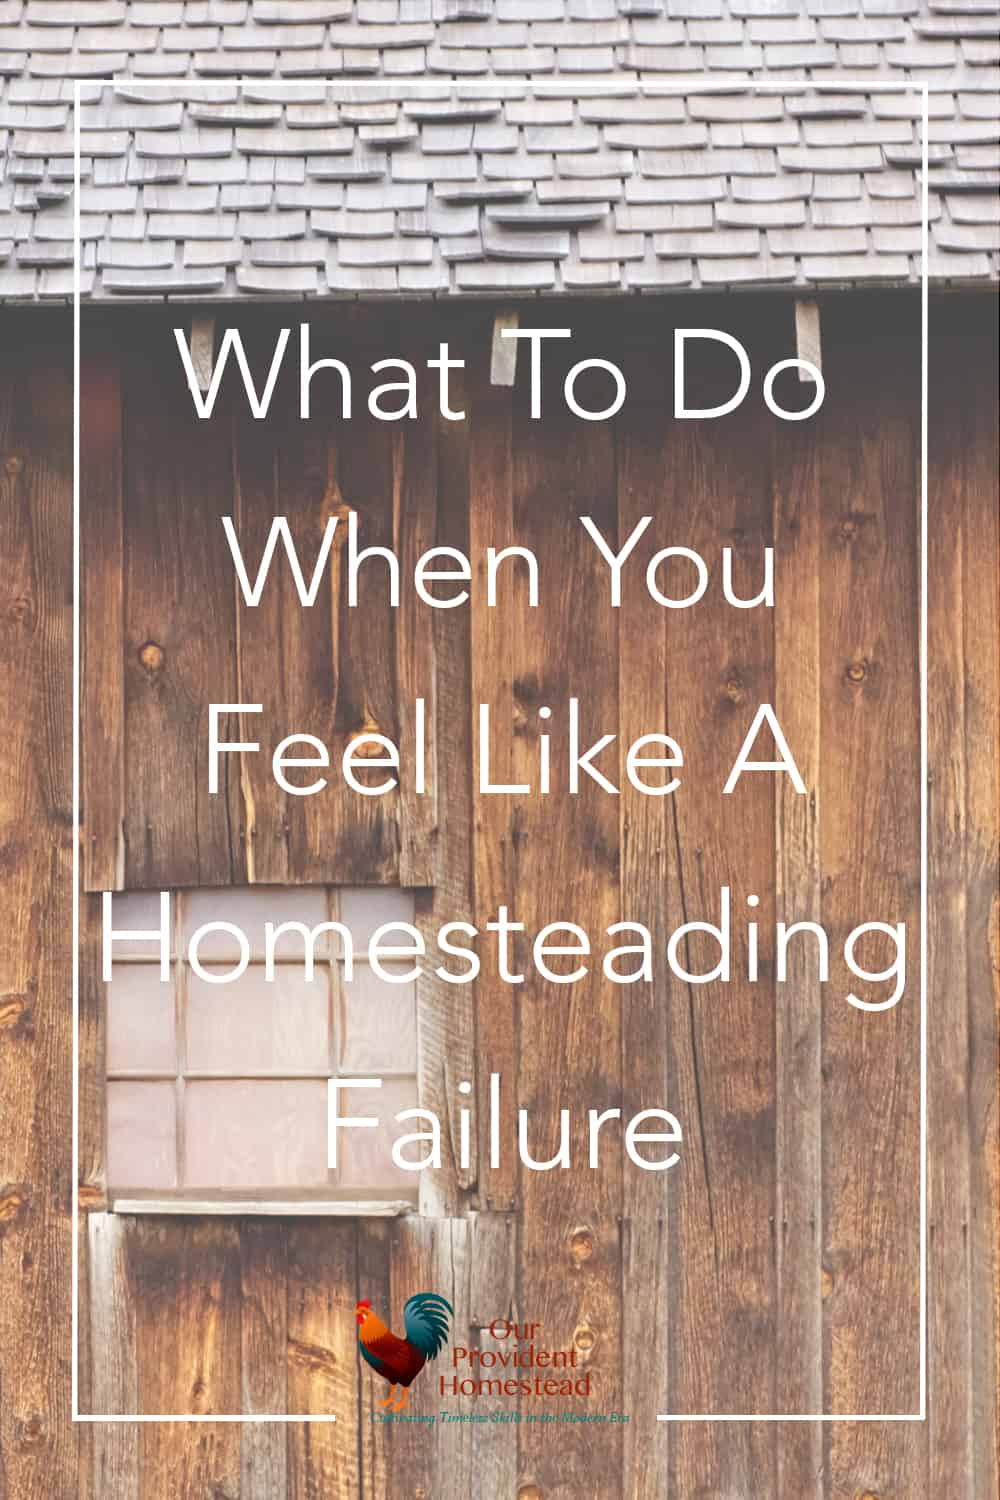 Do you ever feel like homesteading is just too hard? We discuss feeling like a homesteading failure and what you can do about it. Homesteading Failure | Quitting Homesteading | Homesteading